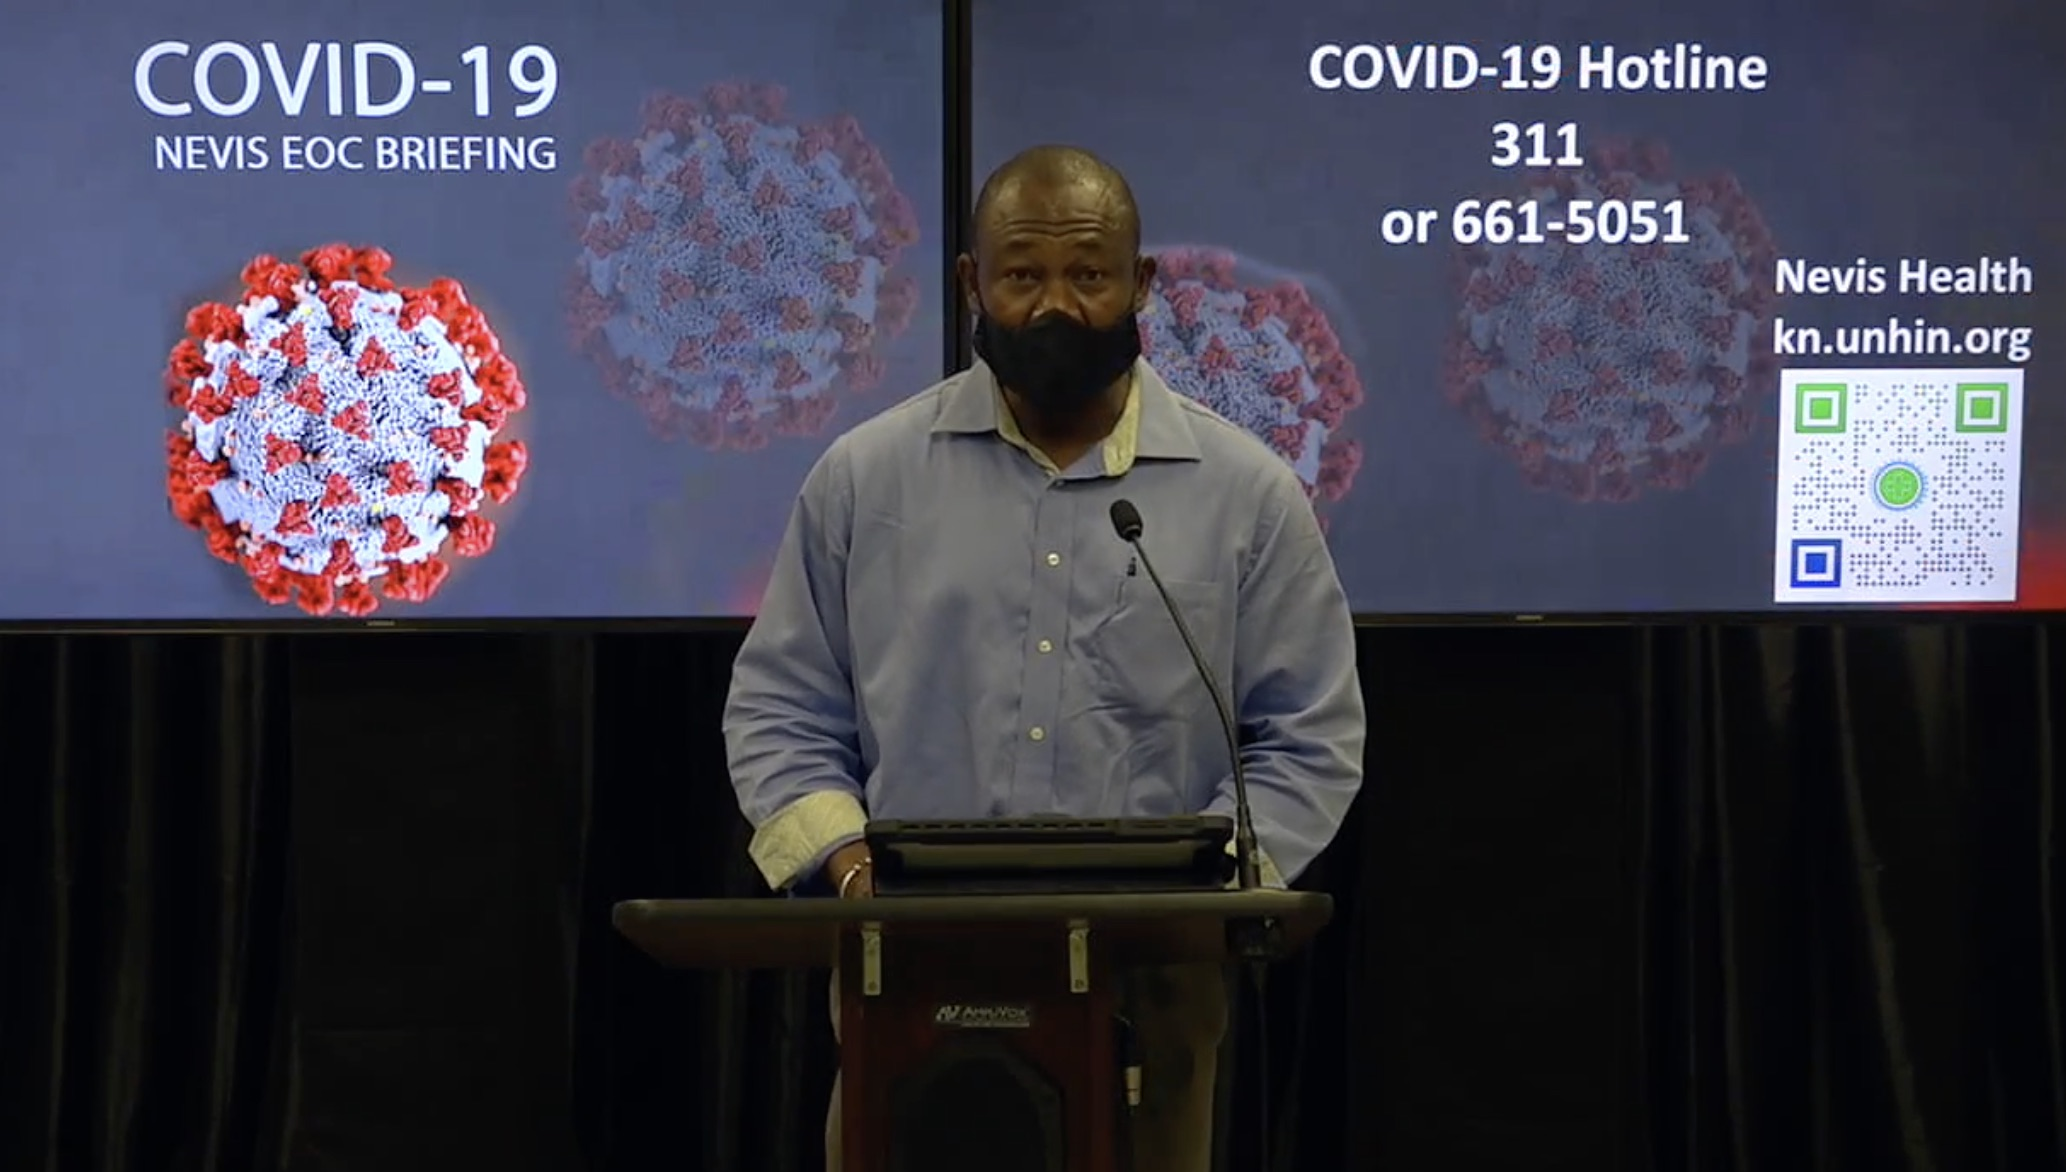 Mr. Brian Dyer, Director at the Nevis Disaster Management Department and Co-Chair of the Nevis COVID-19 Task Force delivering remarks at the Nevis COVID-19 Task Force briefing on August 17, 2020 at the Emergency Operations Centre at Long Point Road